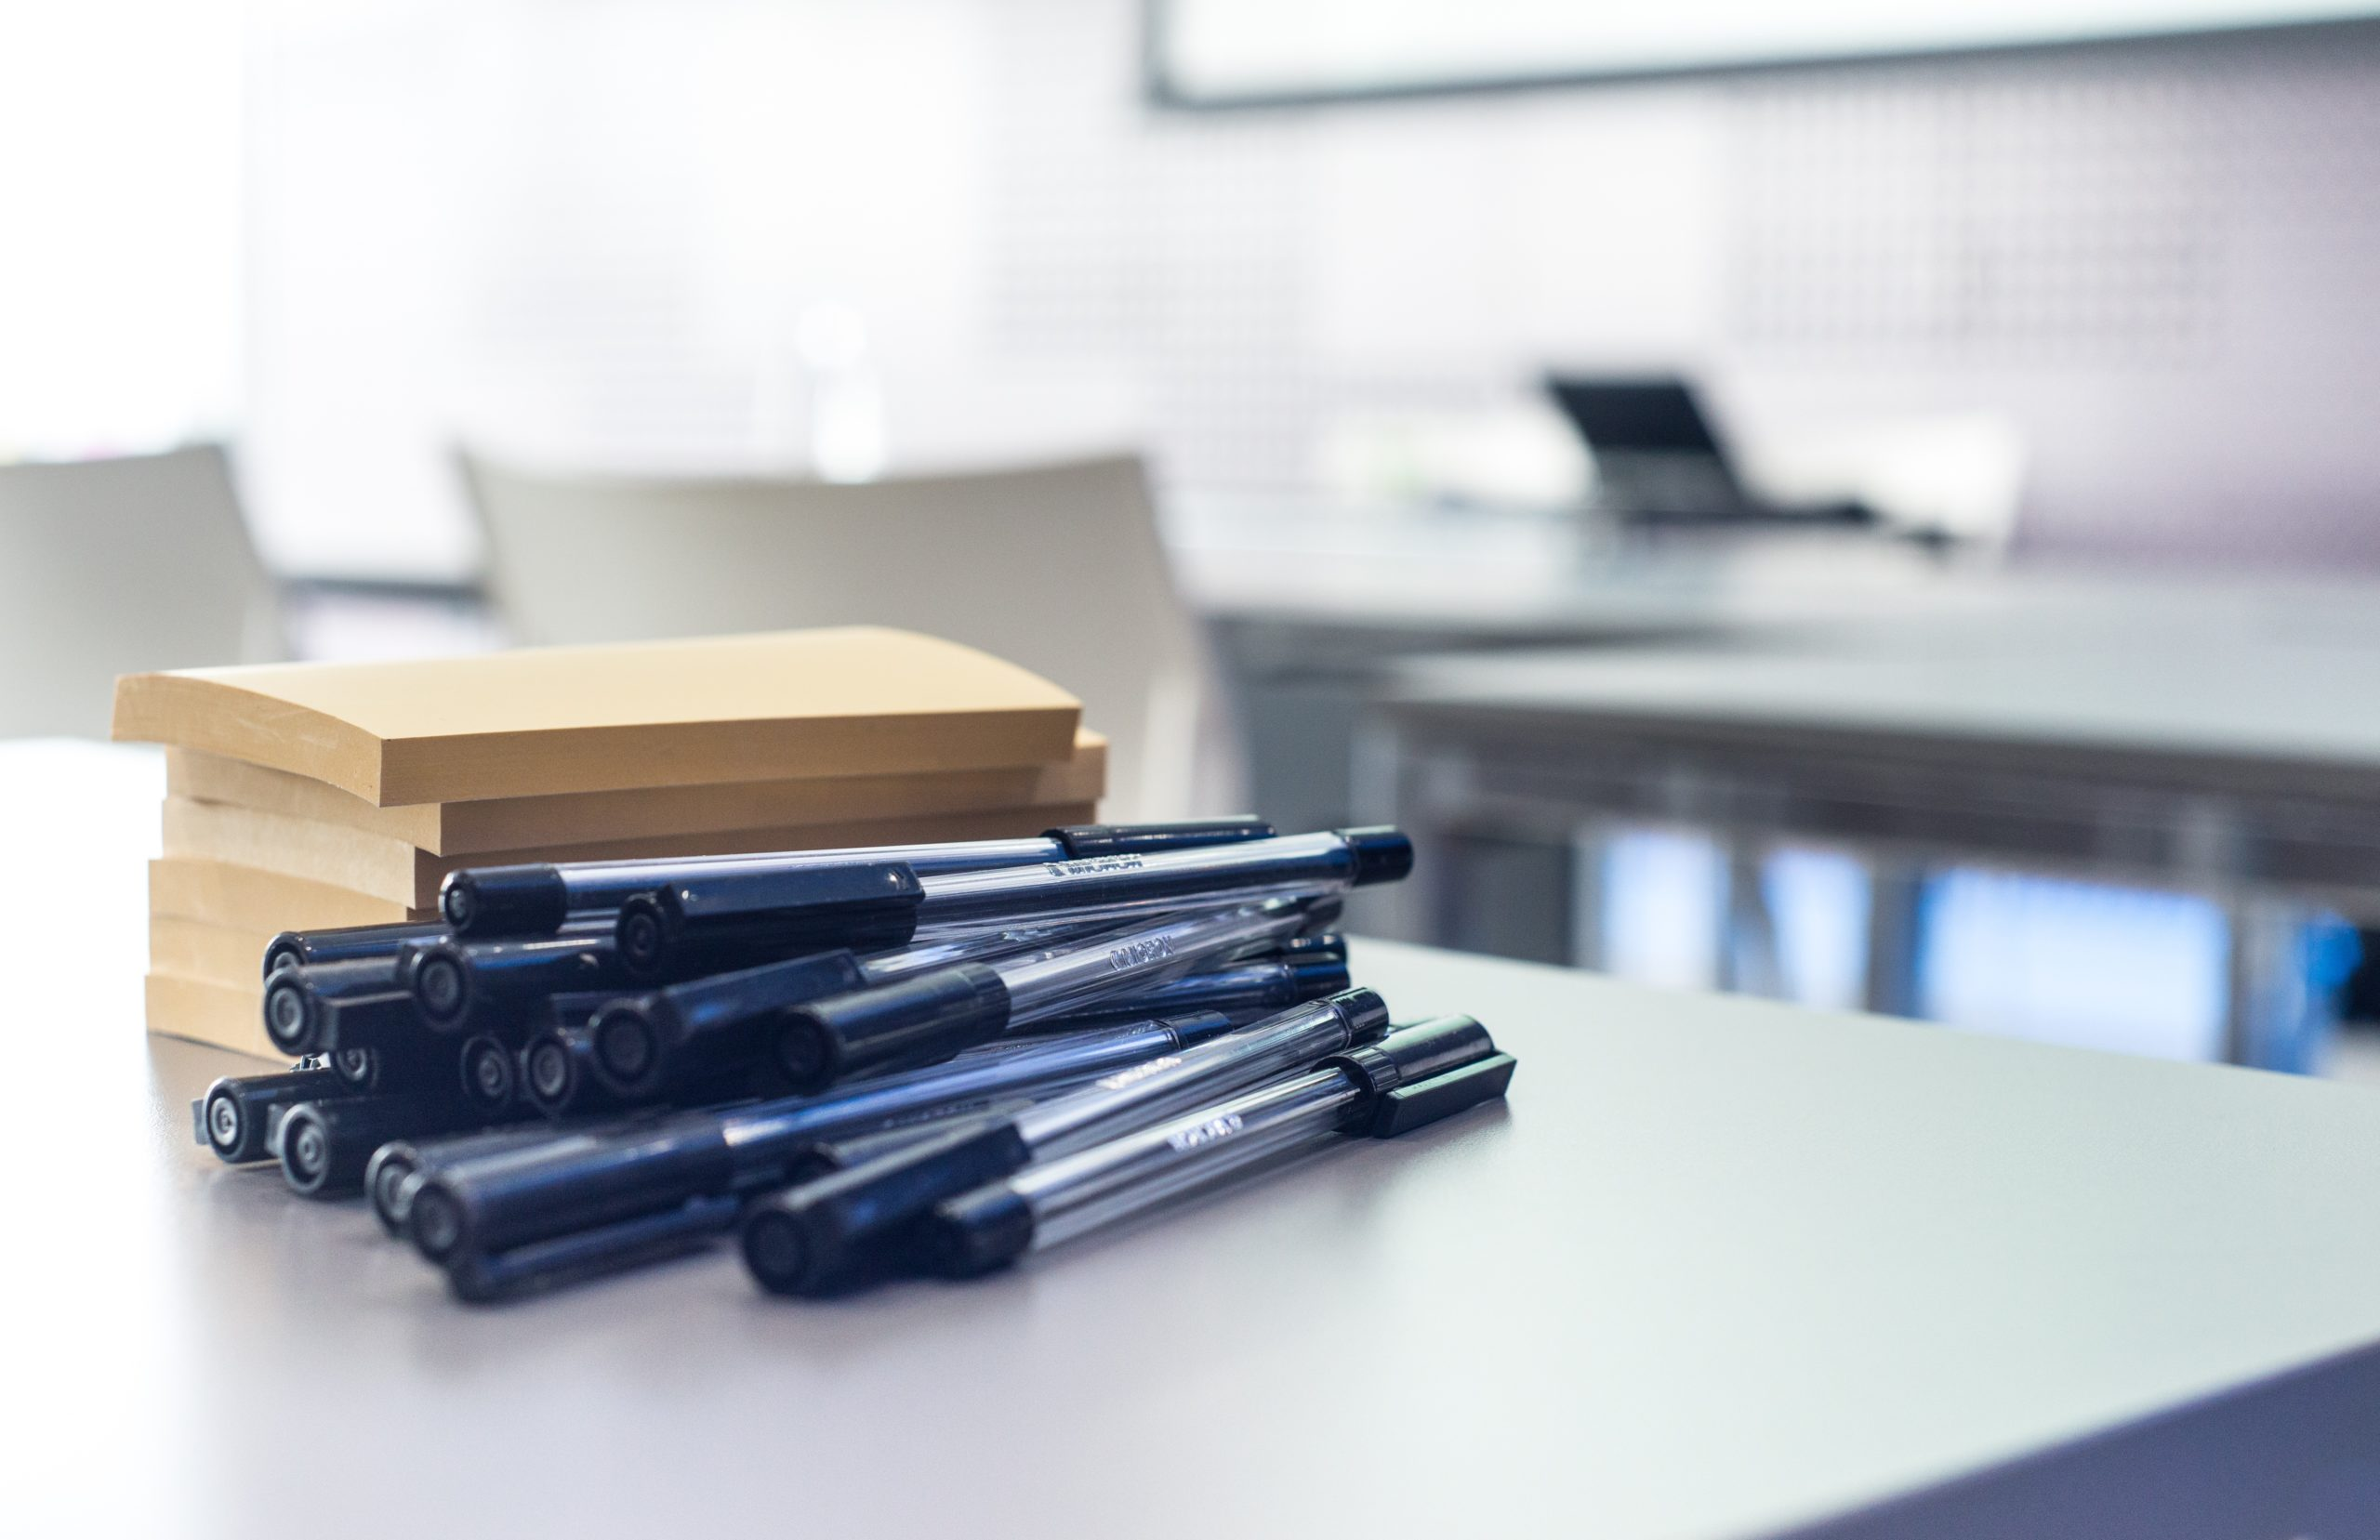 Pens and notepads in an office